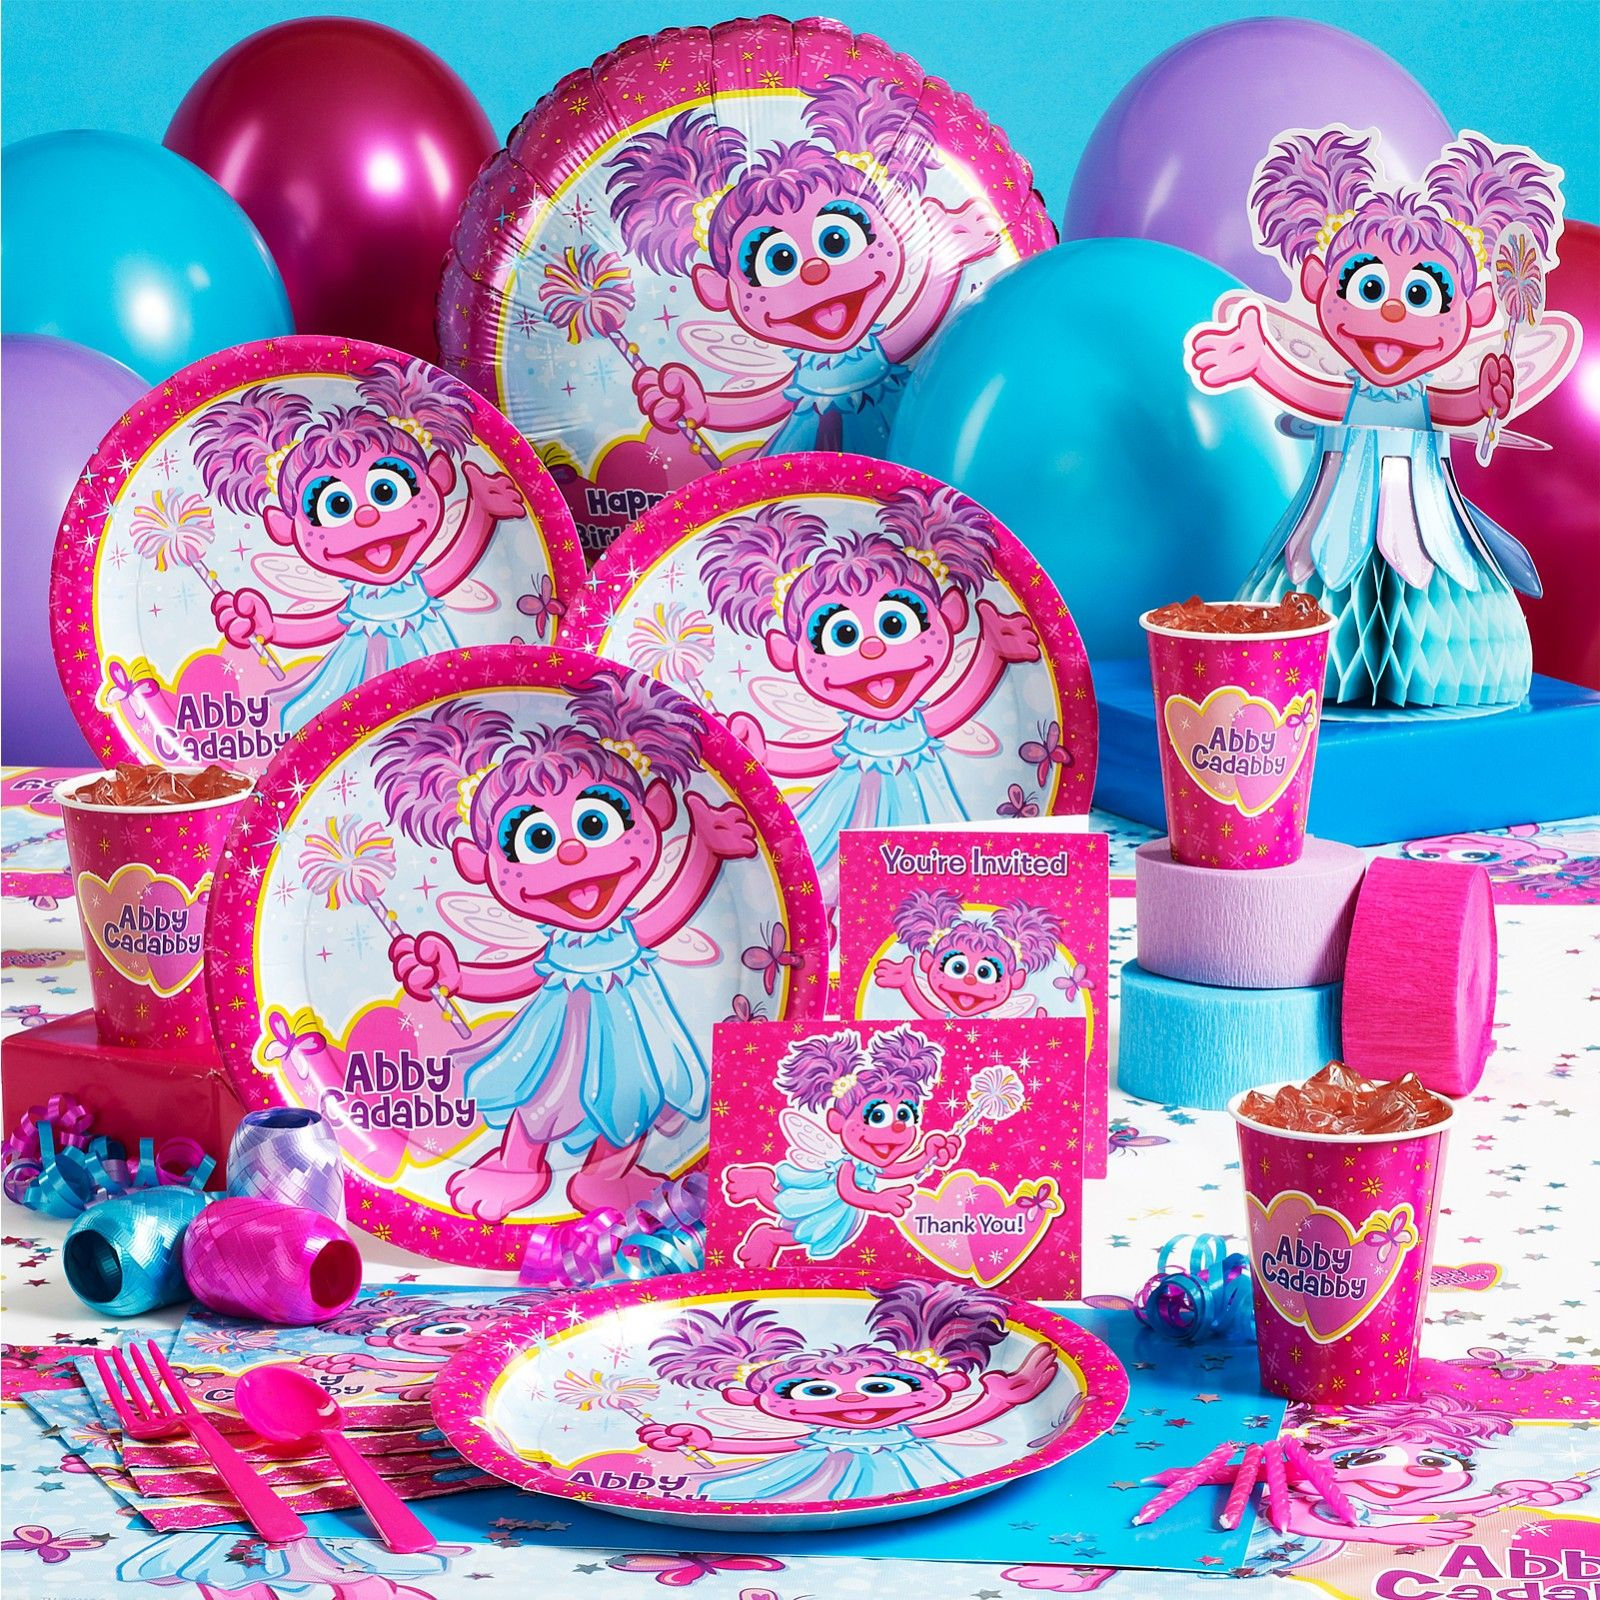 Abby Cadabby Party Supplies. Pairs well with Elmo and Sesame ...